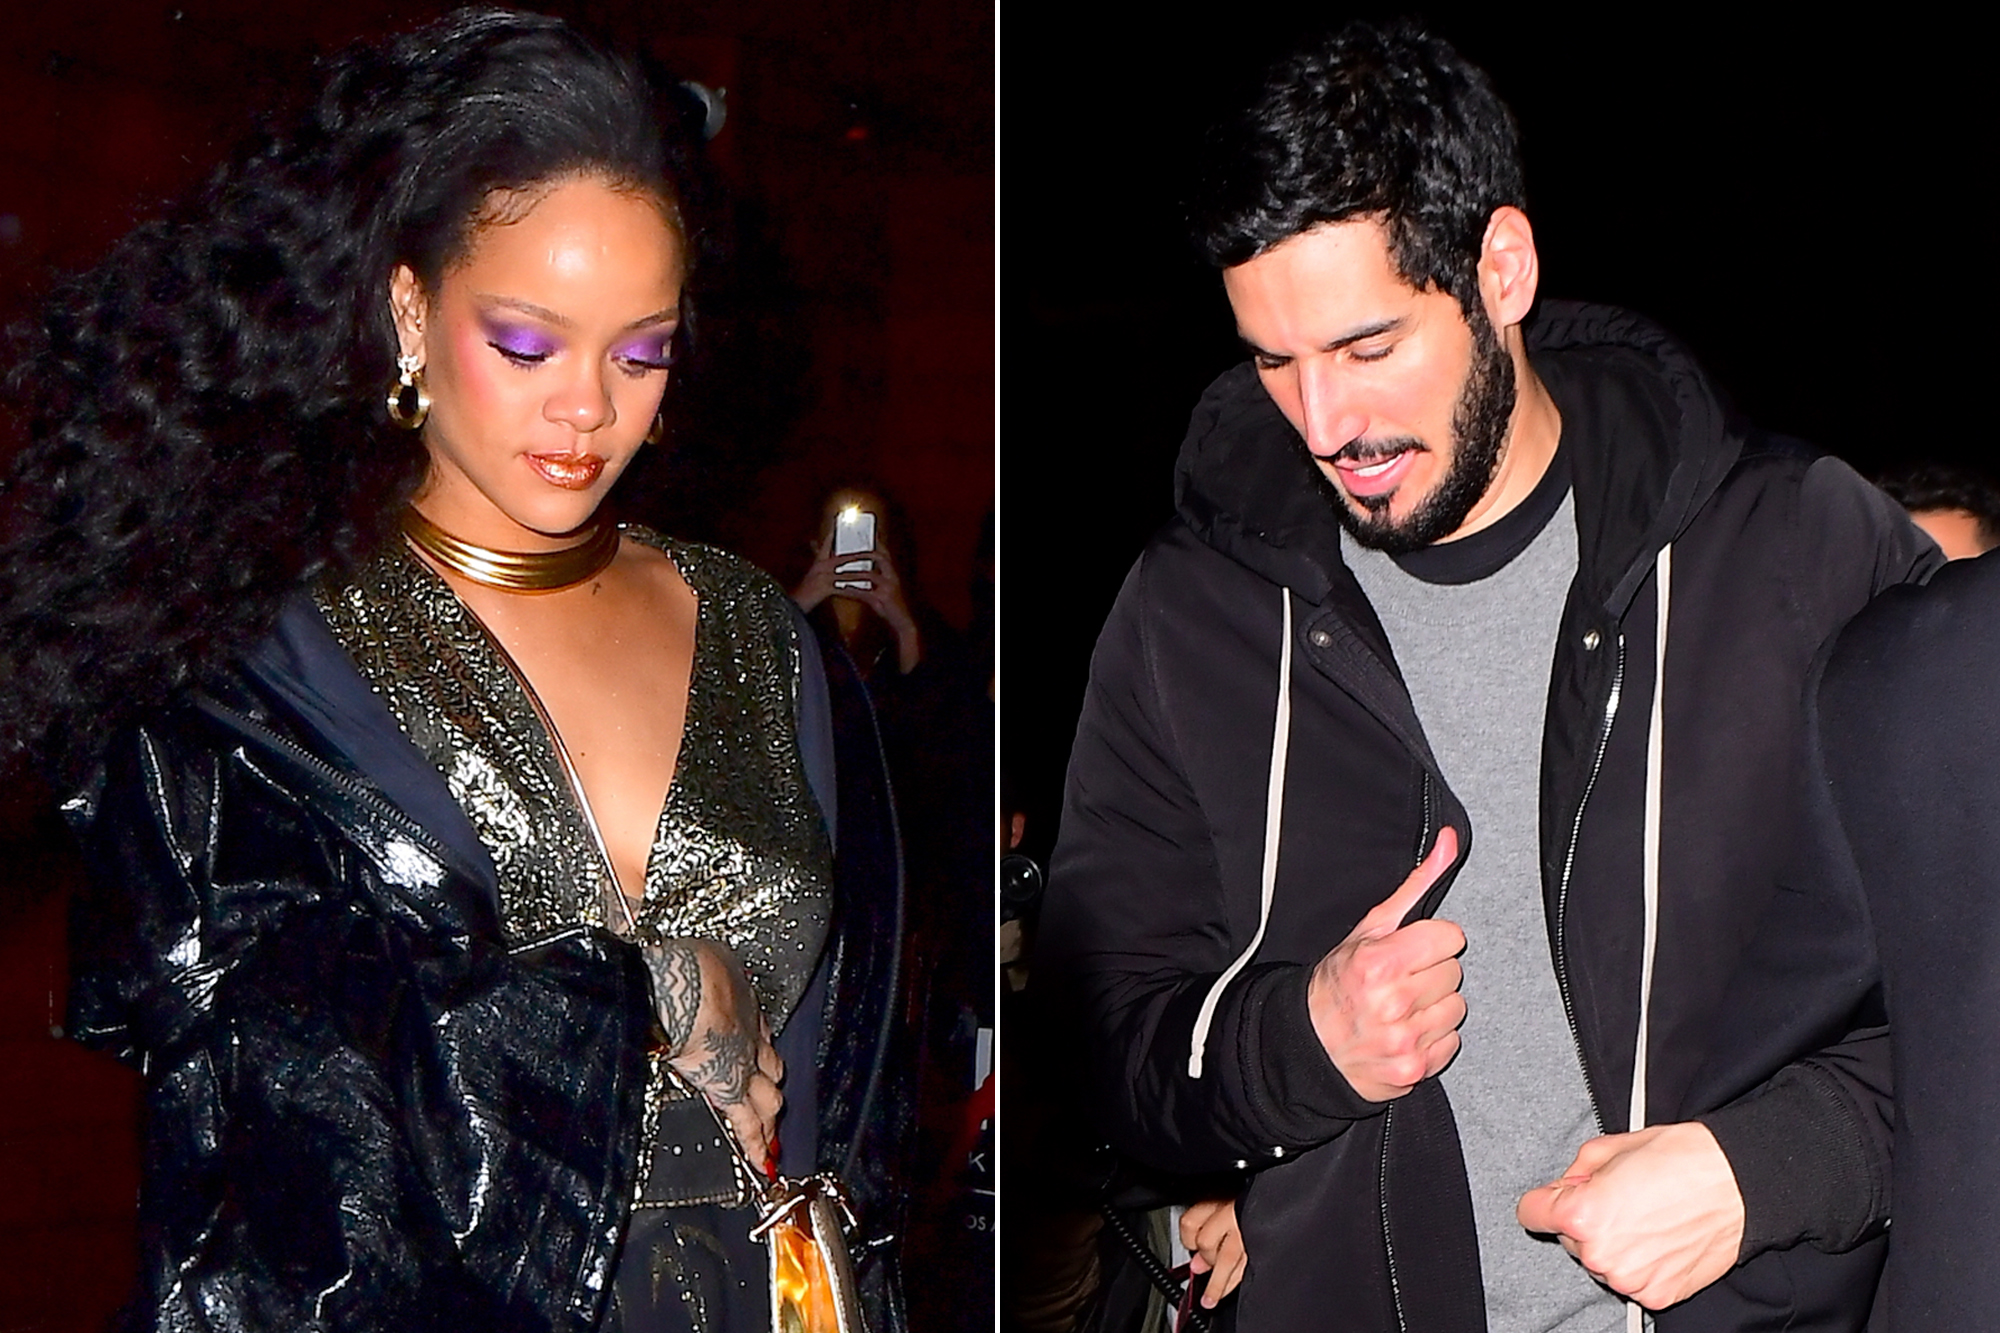 rihanna-would-reportedly-accept-if-hassan-jameel-proposed-to-her-heres-why